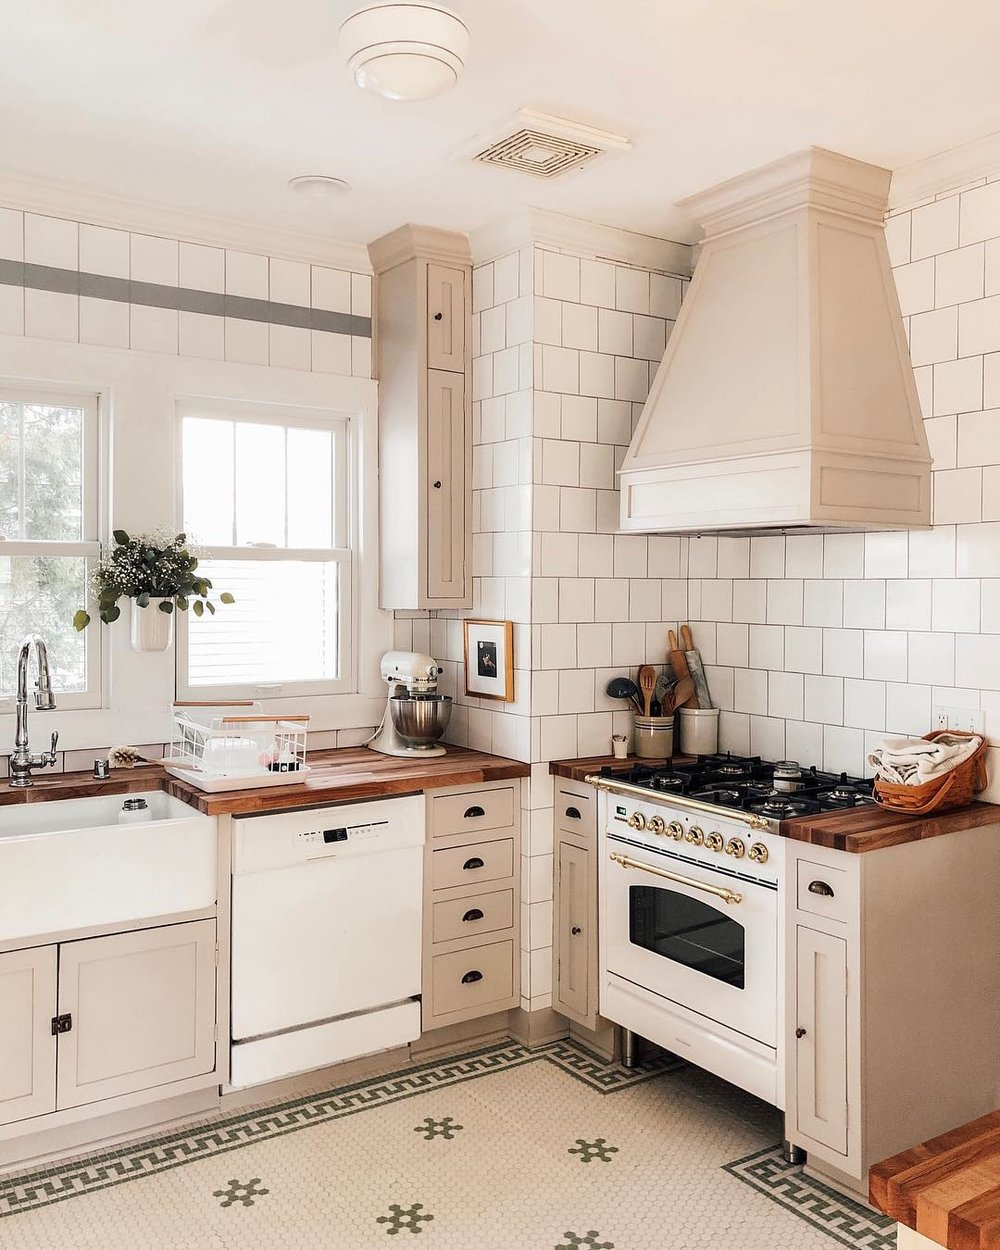 Bris Neutral kitchen // neutral cabinet paint colors for kitchens // the Grit and Polish